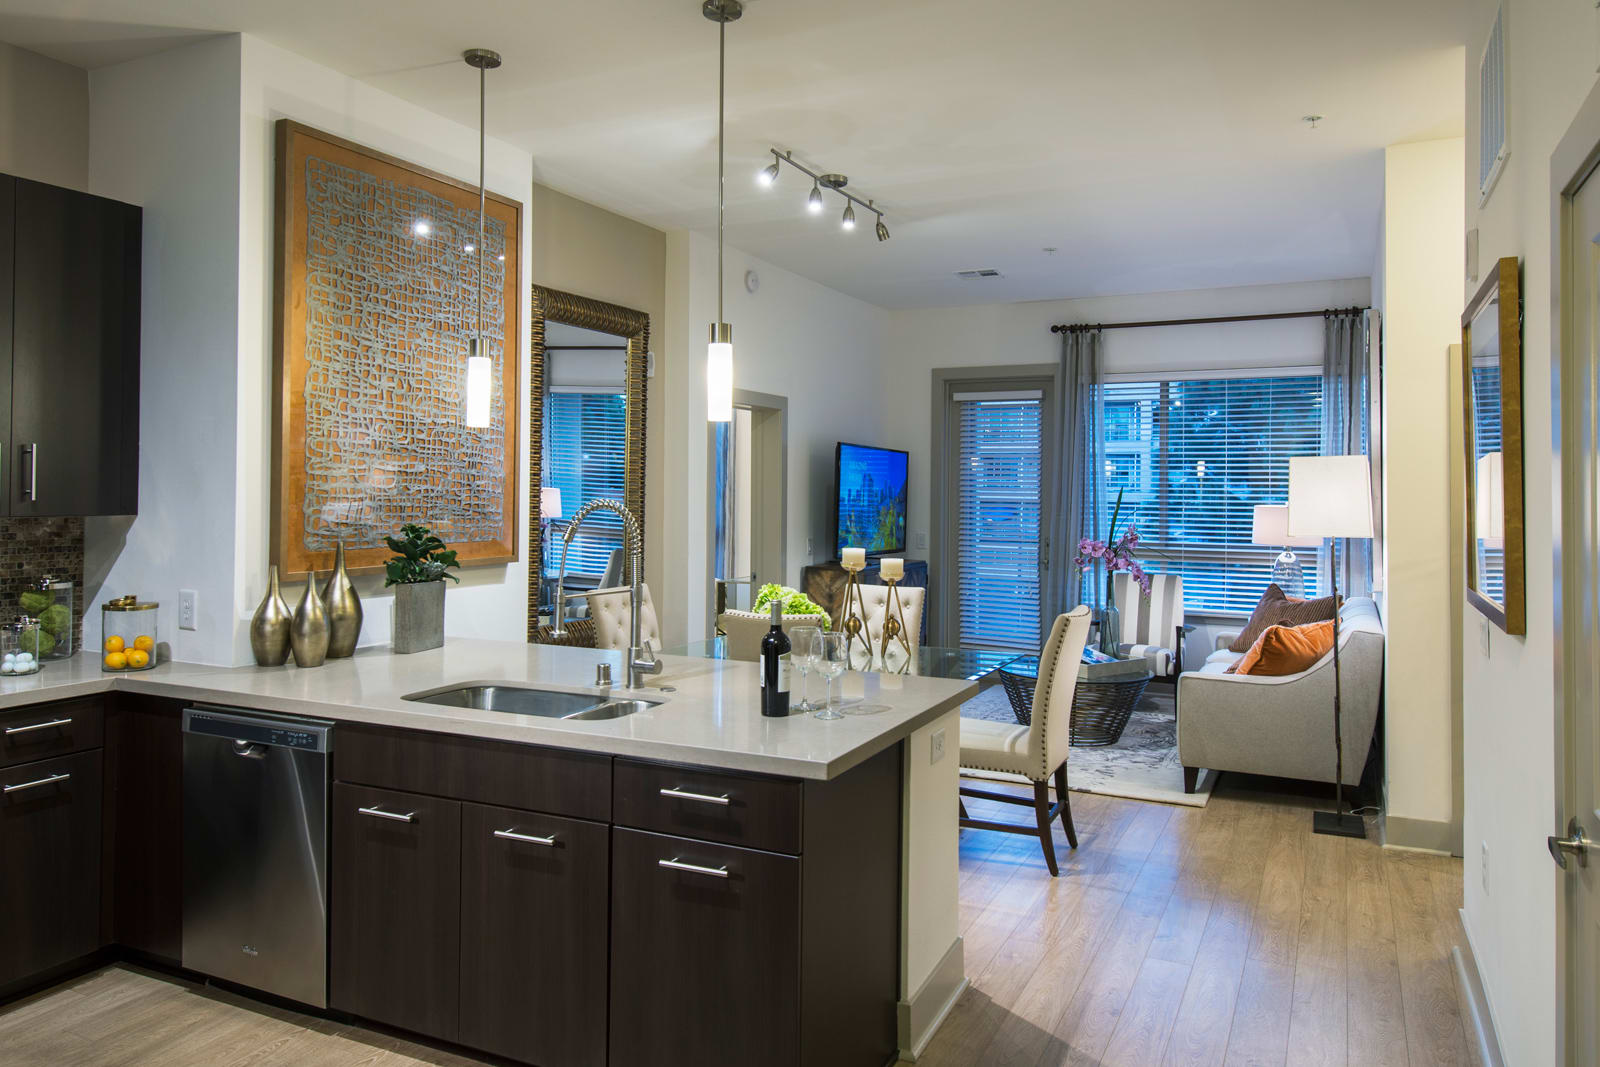 Gourmet Kitchens with Stainless Steel Appliances at 1000 Grand by Windsor, 1000 S Grand Ave,, Los Angeles